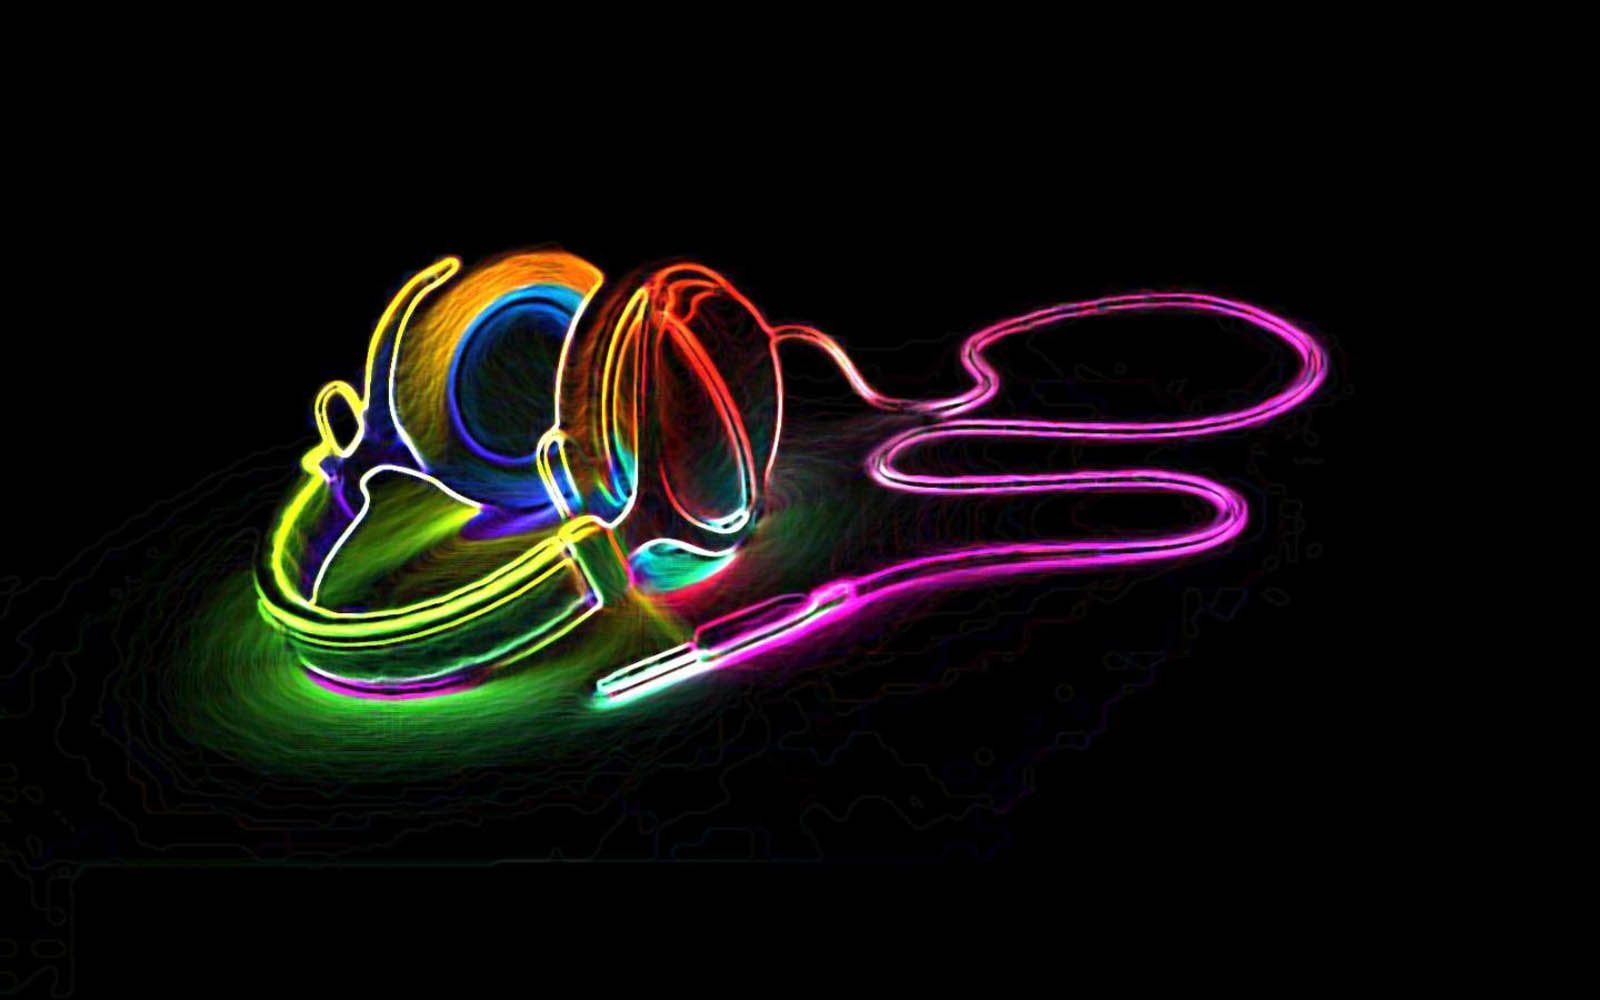 Neon Art Desktop Backgrounds Neon Art Photos Neon Art Images and 1600x1000